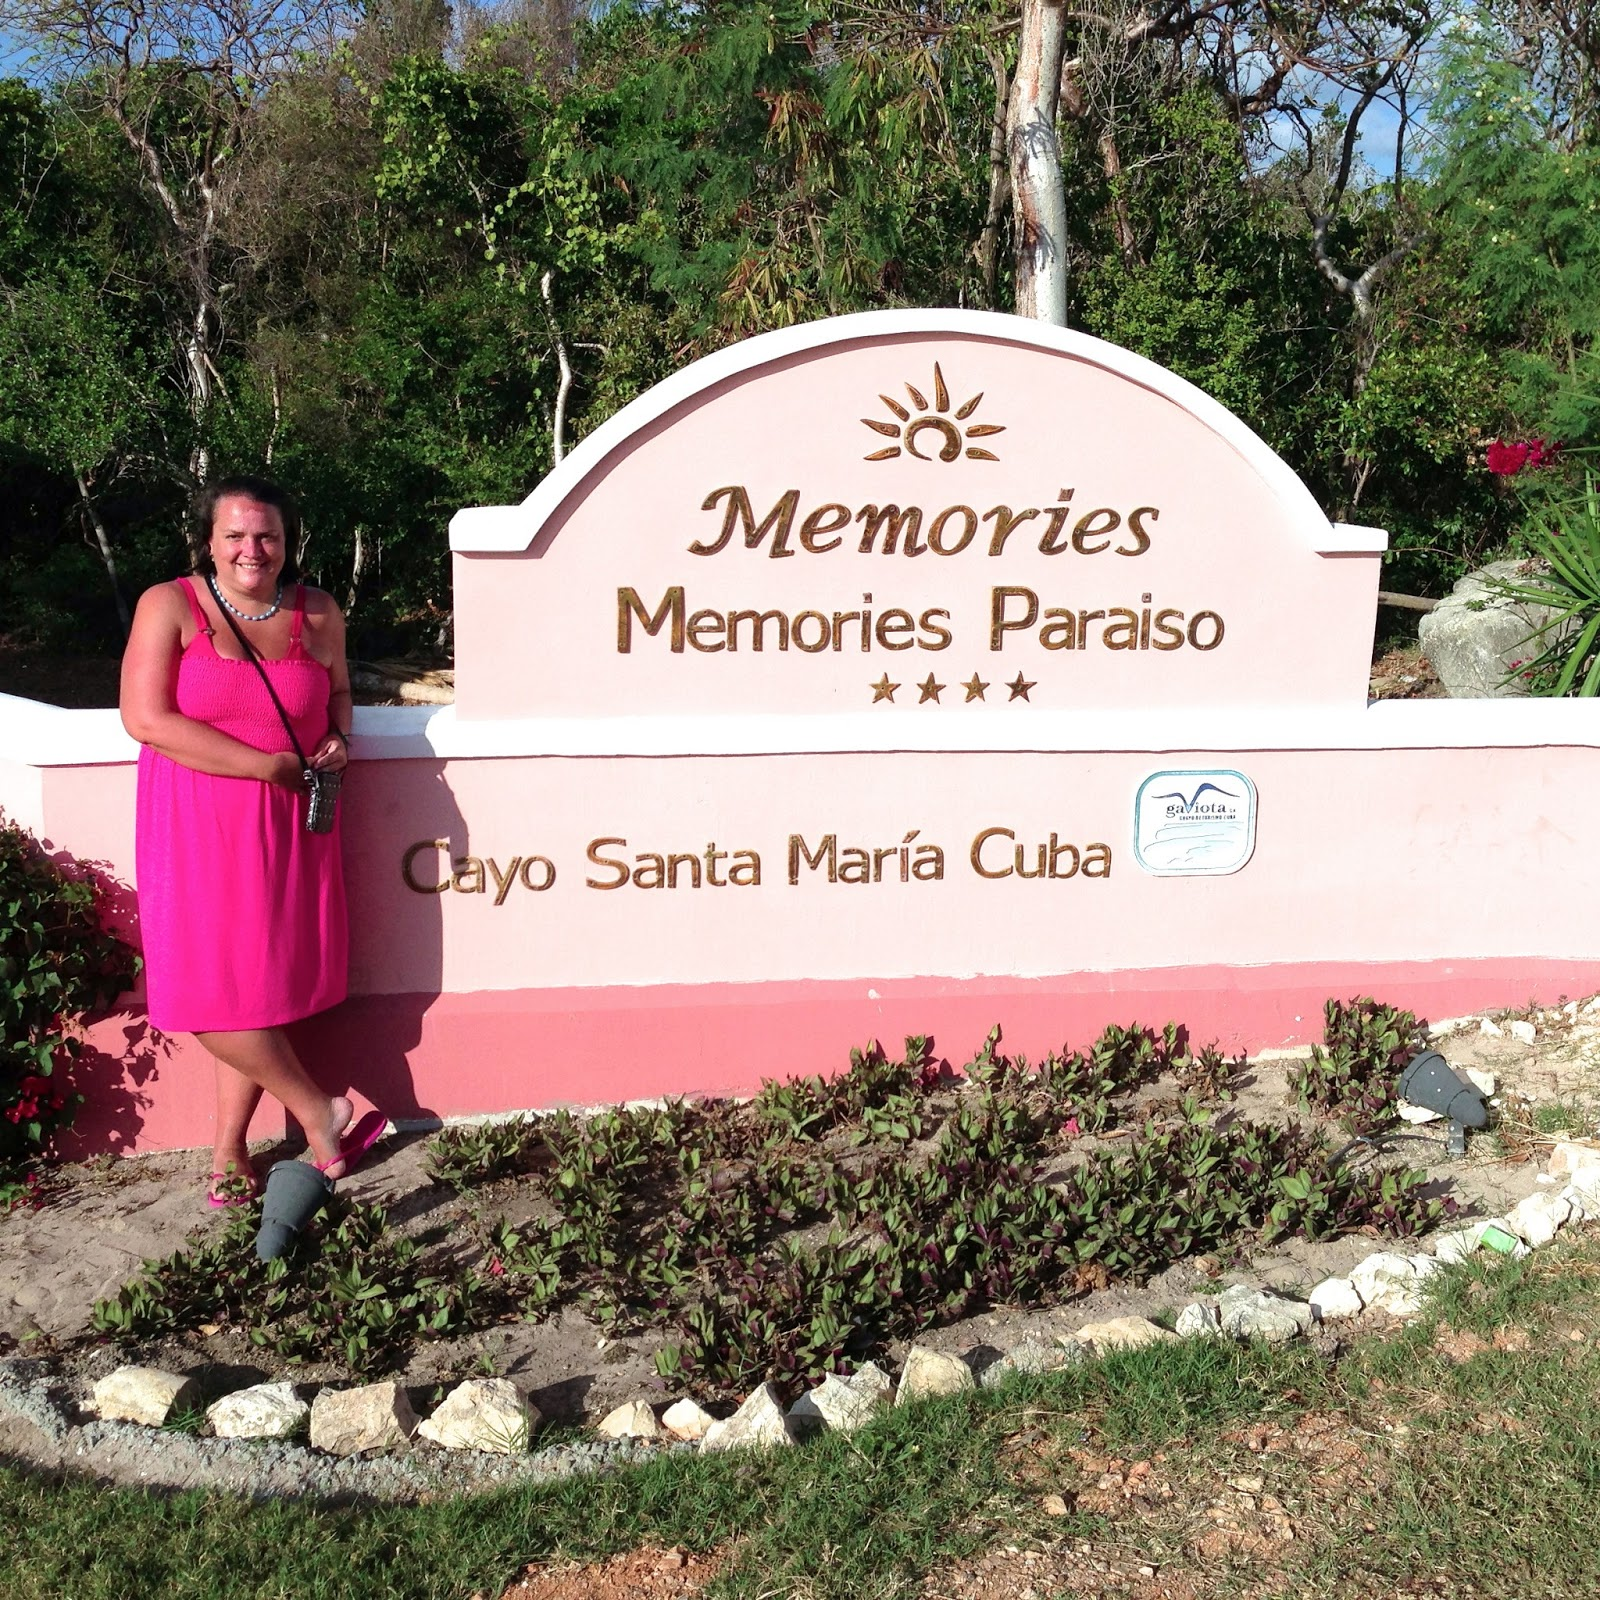 We Stayed At The Memories Paraiso Azul Beach Resorts Whether They Are 3 4 Or 5 Star Depends On Your Publication